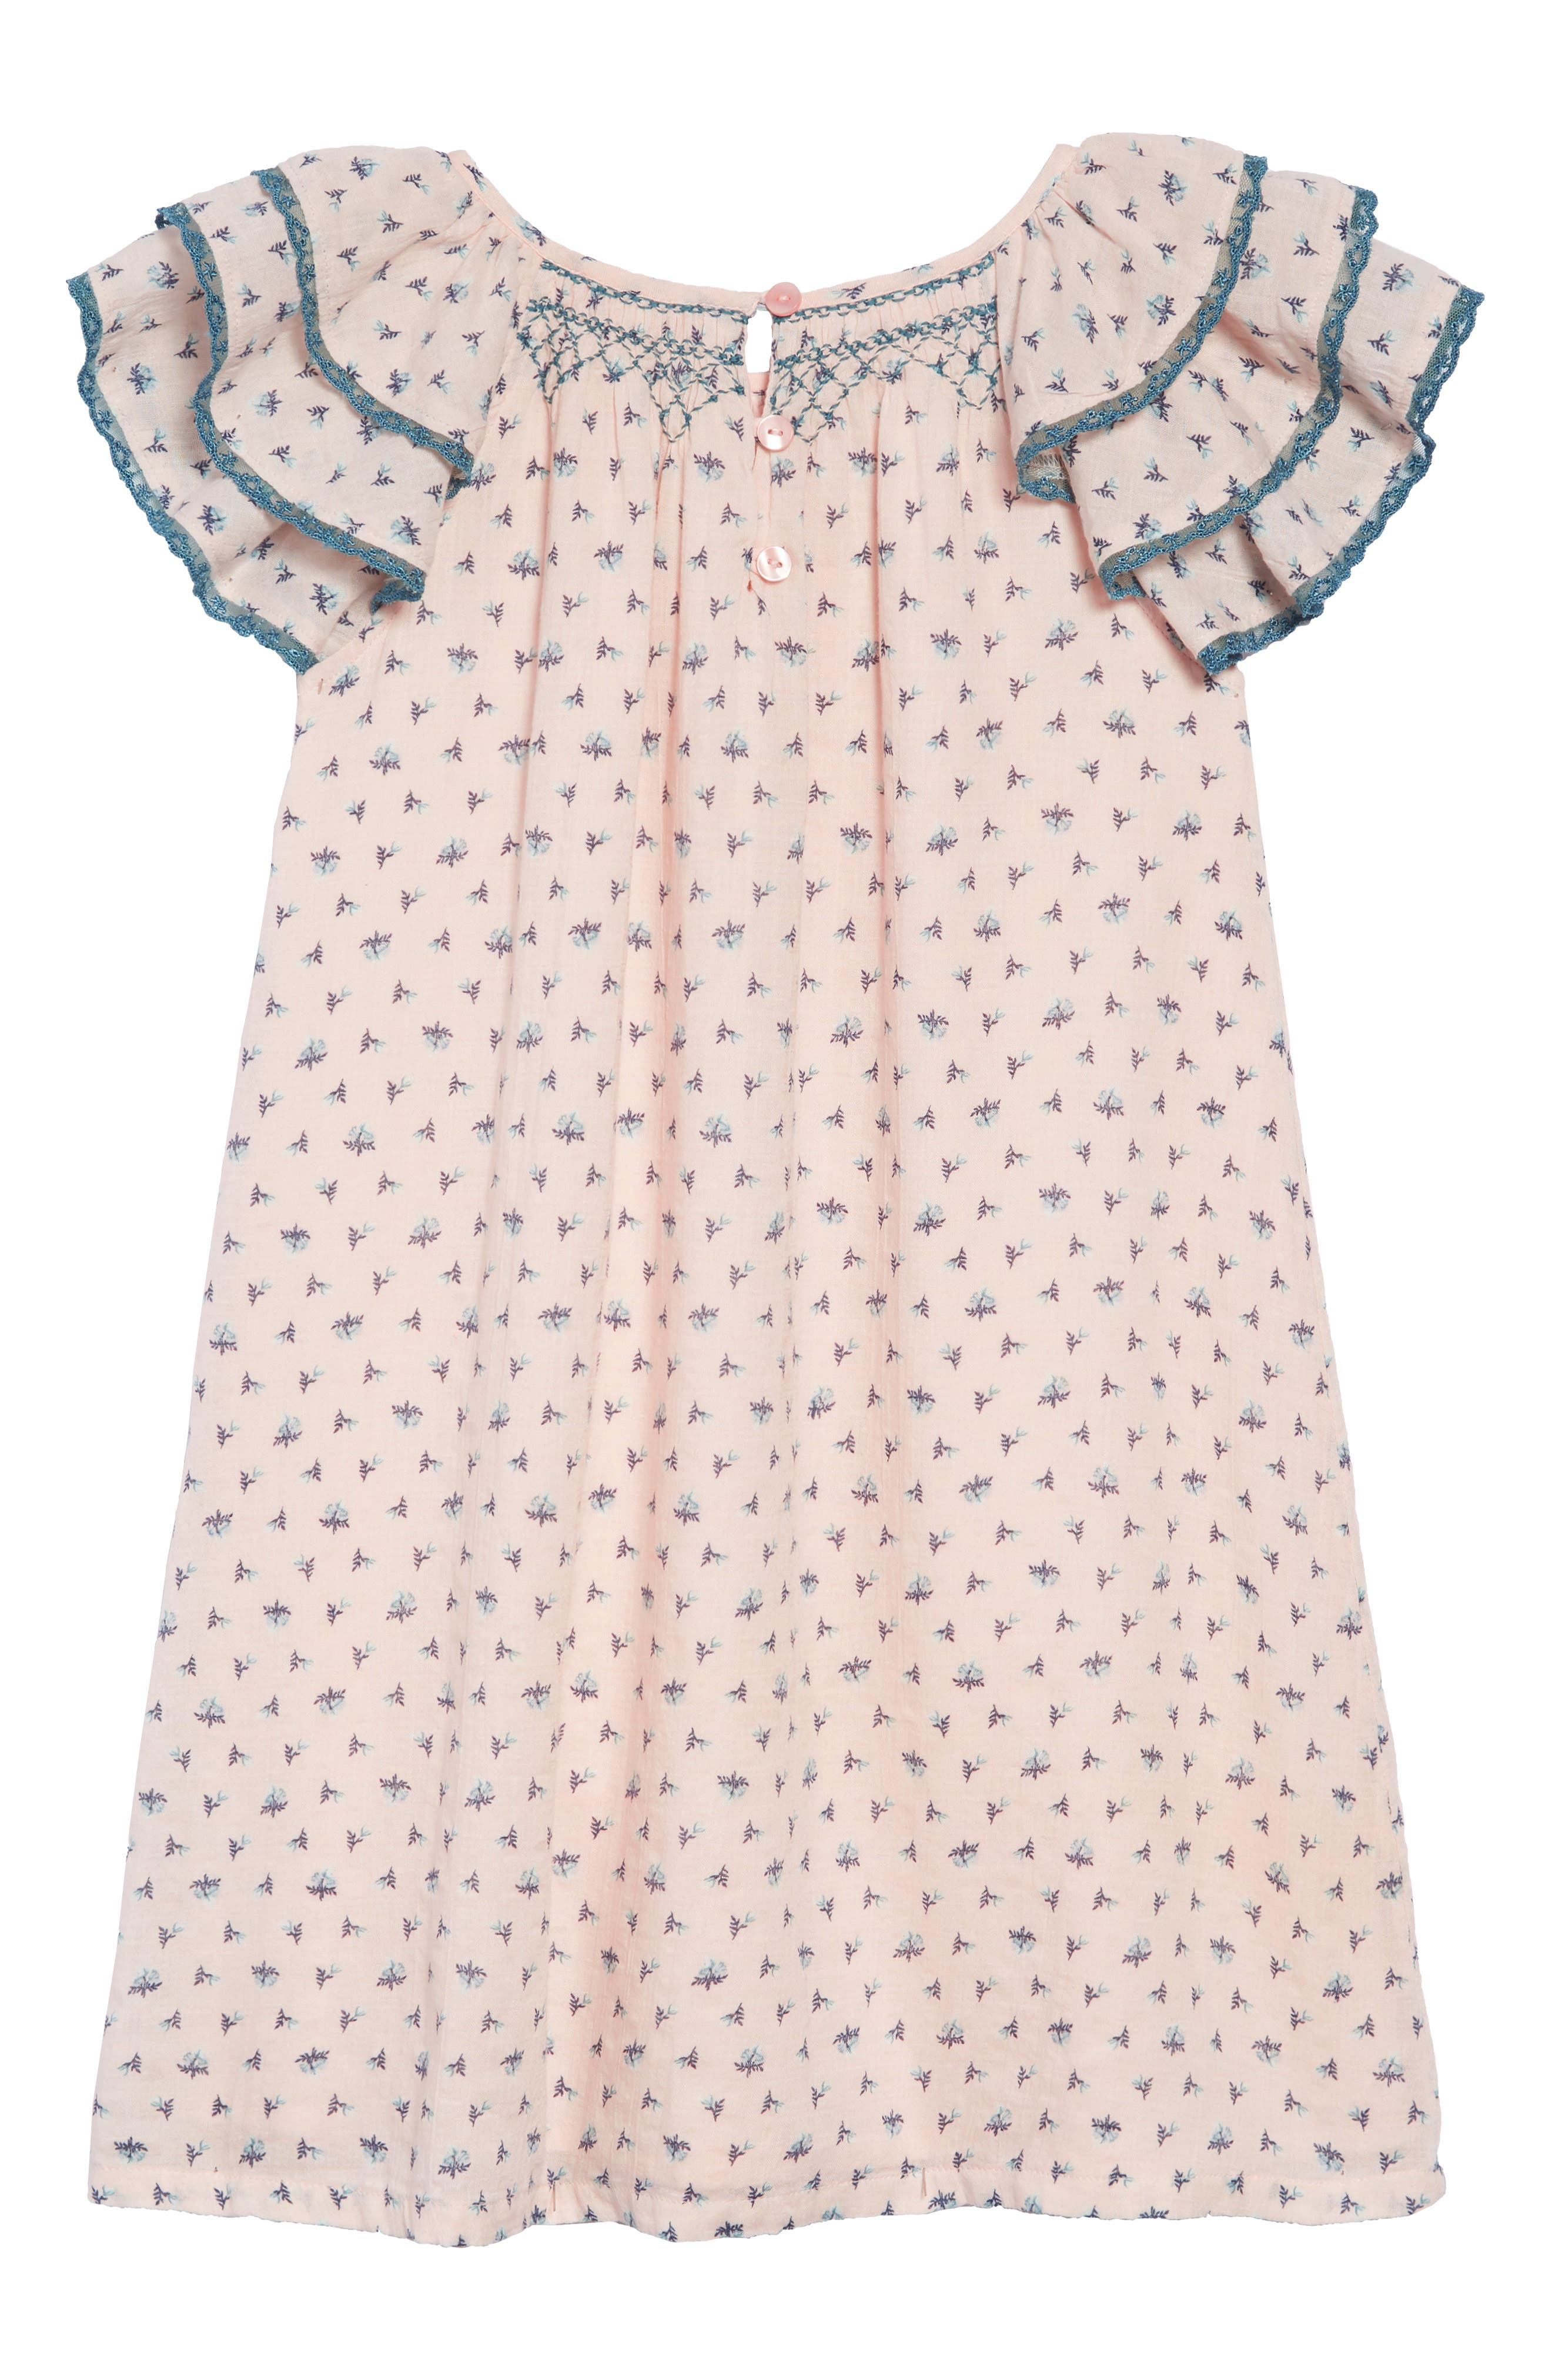 Tiered Sleeve Dress,                             Alternate thumbnail 2, color,                             PINK CHINTZ PRIM FLORAL